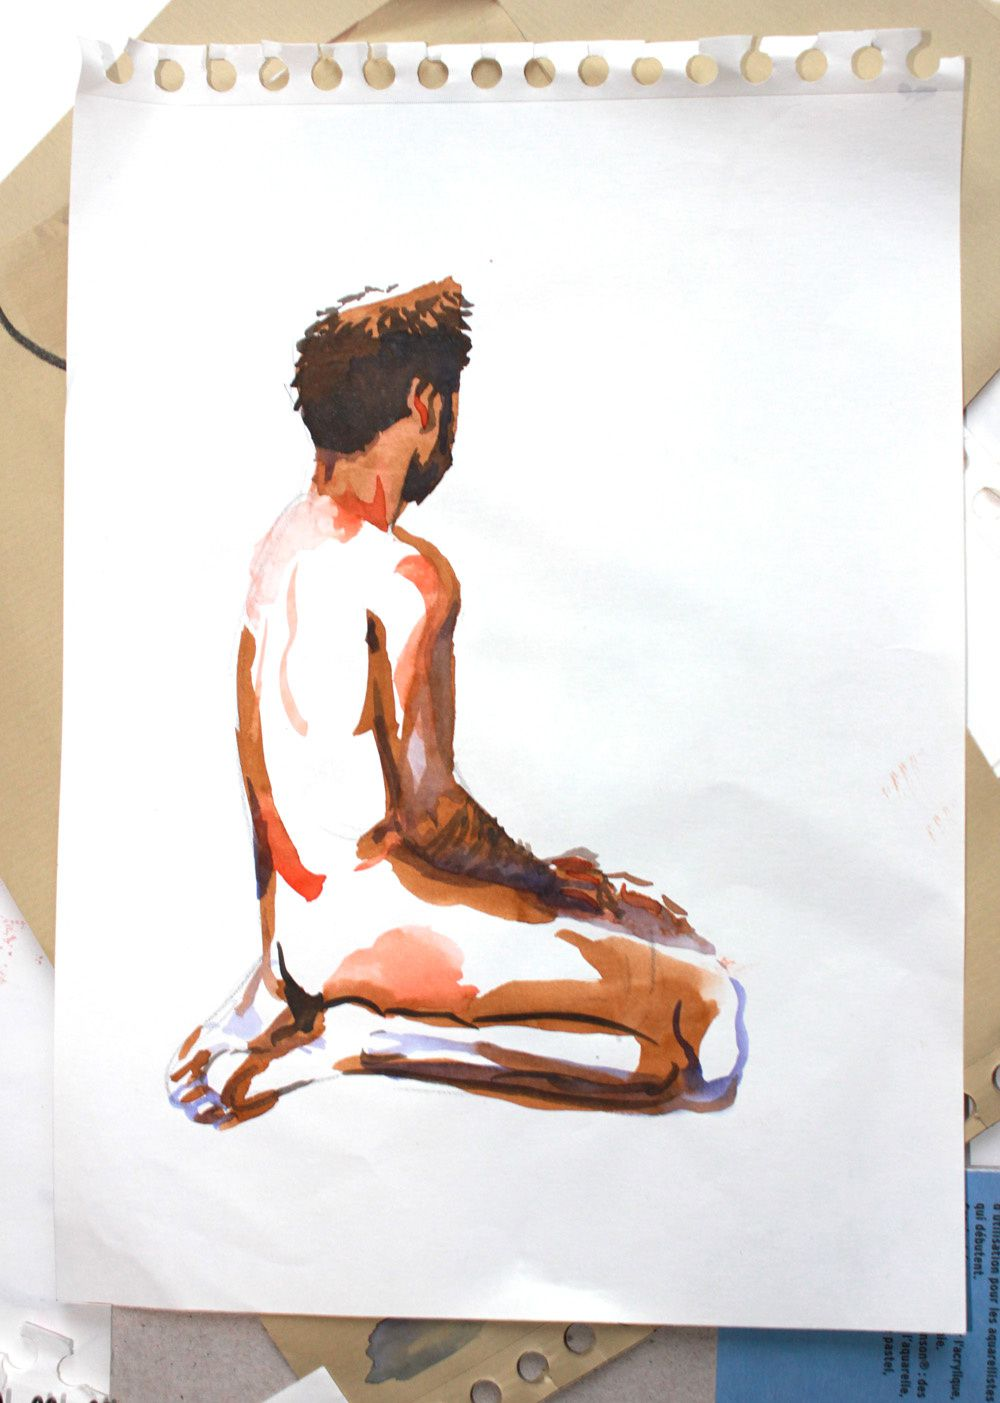 Modèle Vivant : pose de 8 minutes à l'encre aquarelle / Life-drawing : required time of 6 minutes, with brillant watercolour